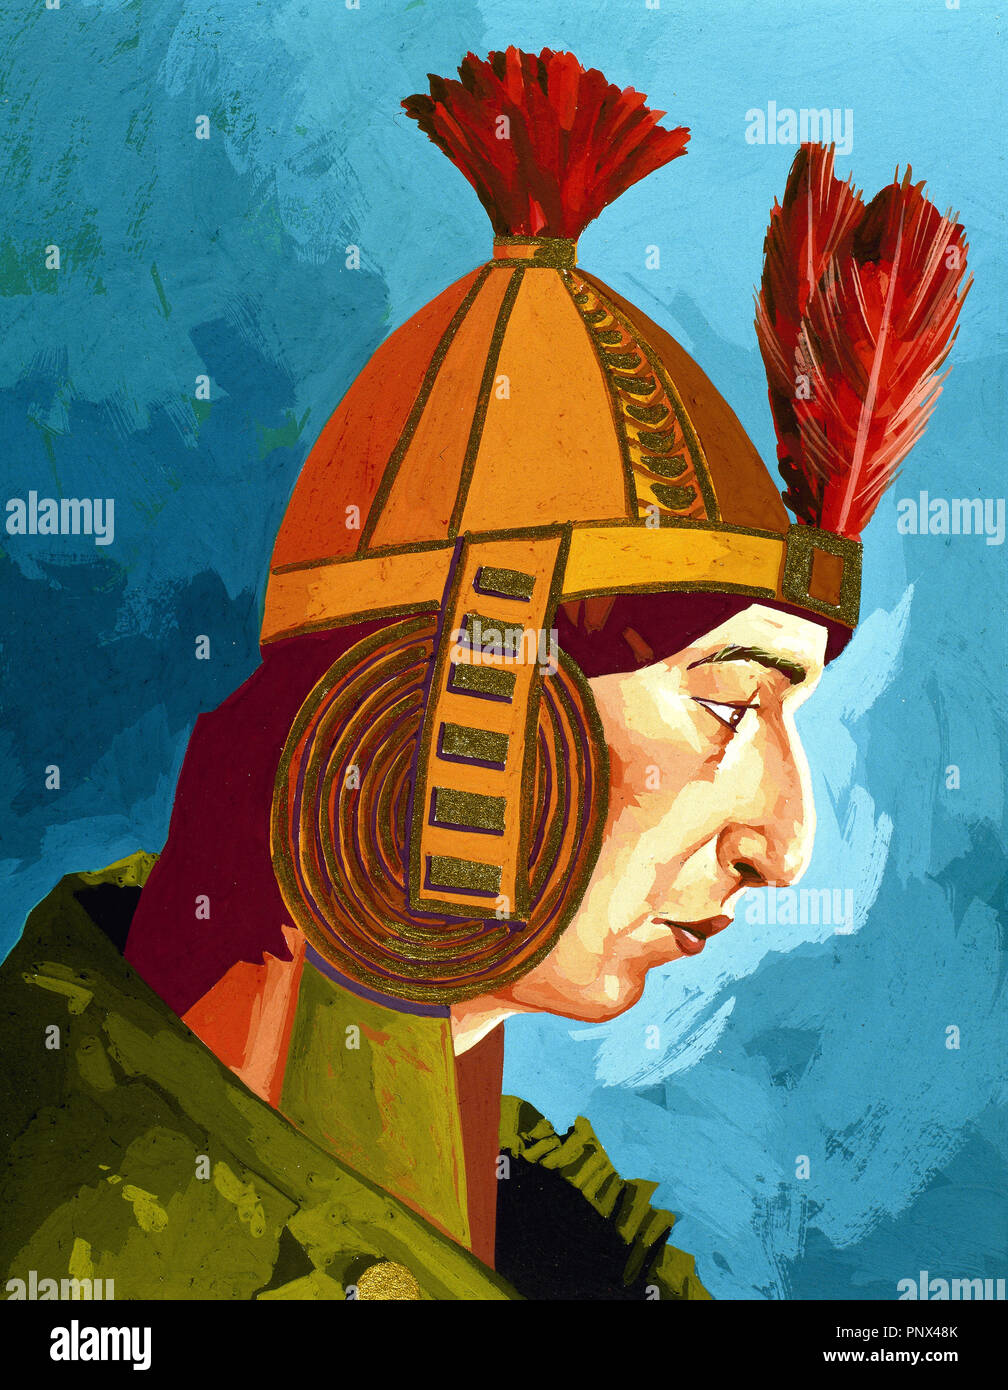 Huascar Inca (1491–1532). Sapa Inca of the Inca empire from 1527 to 1532 AD, succeeding his father Huayna Capac and brother Ninan Cuyoch. - Stock Image